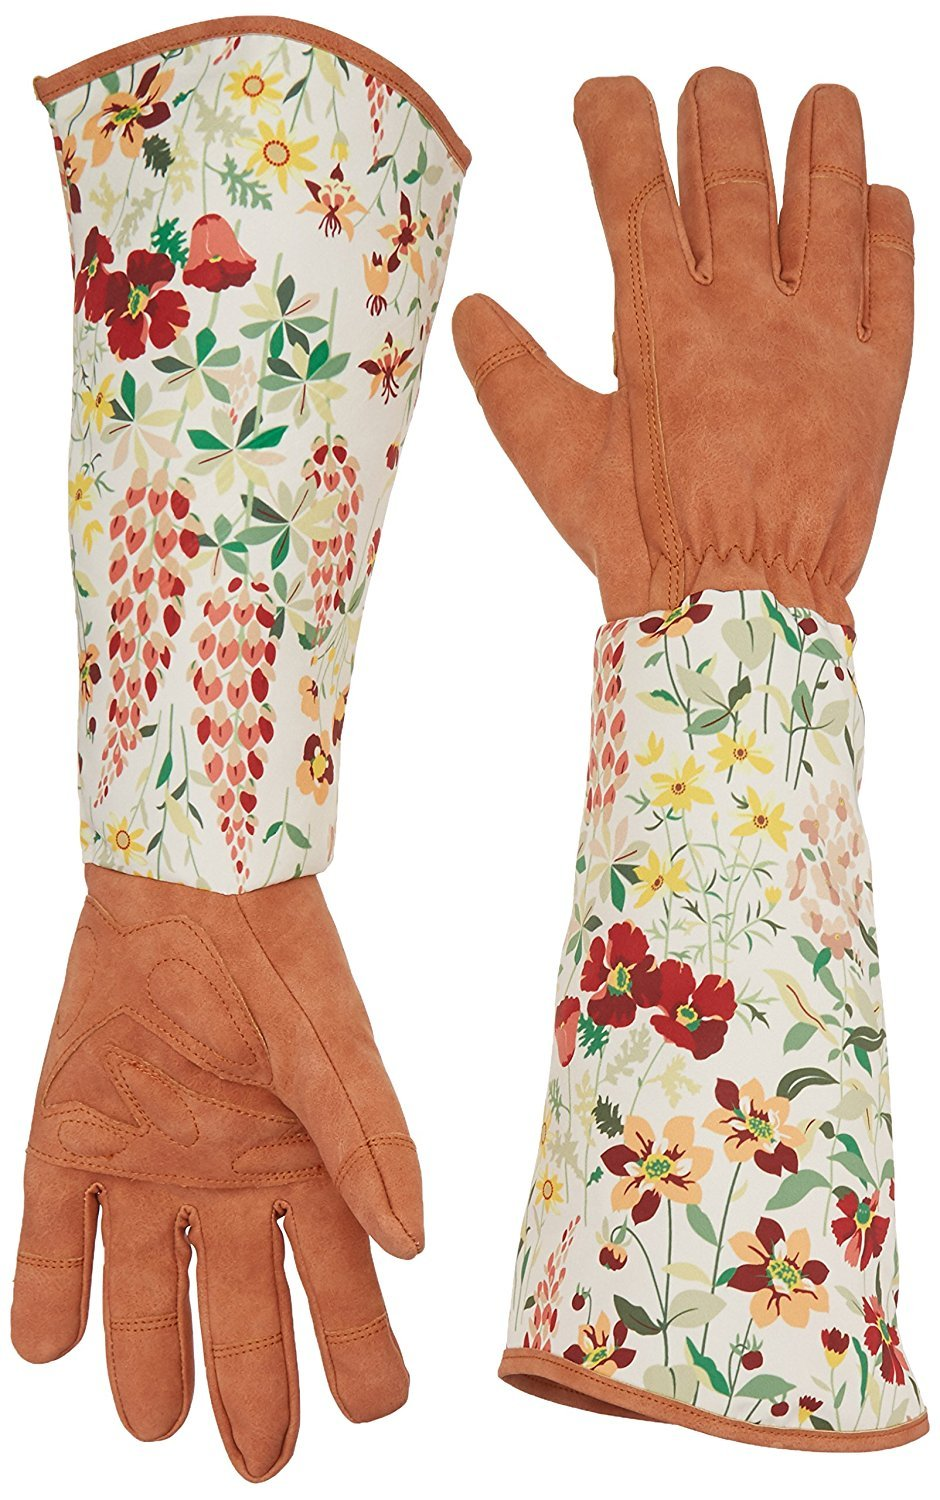 QEES Leather Gardening Gloves with Thorn Proof Garden Gauntlet for Ladies with Long Polyester Print Floral Sleeves to Protect Your Arms Until the Elbow YLST01 ZhuoLang